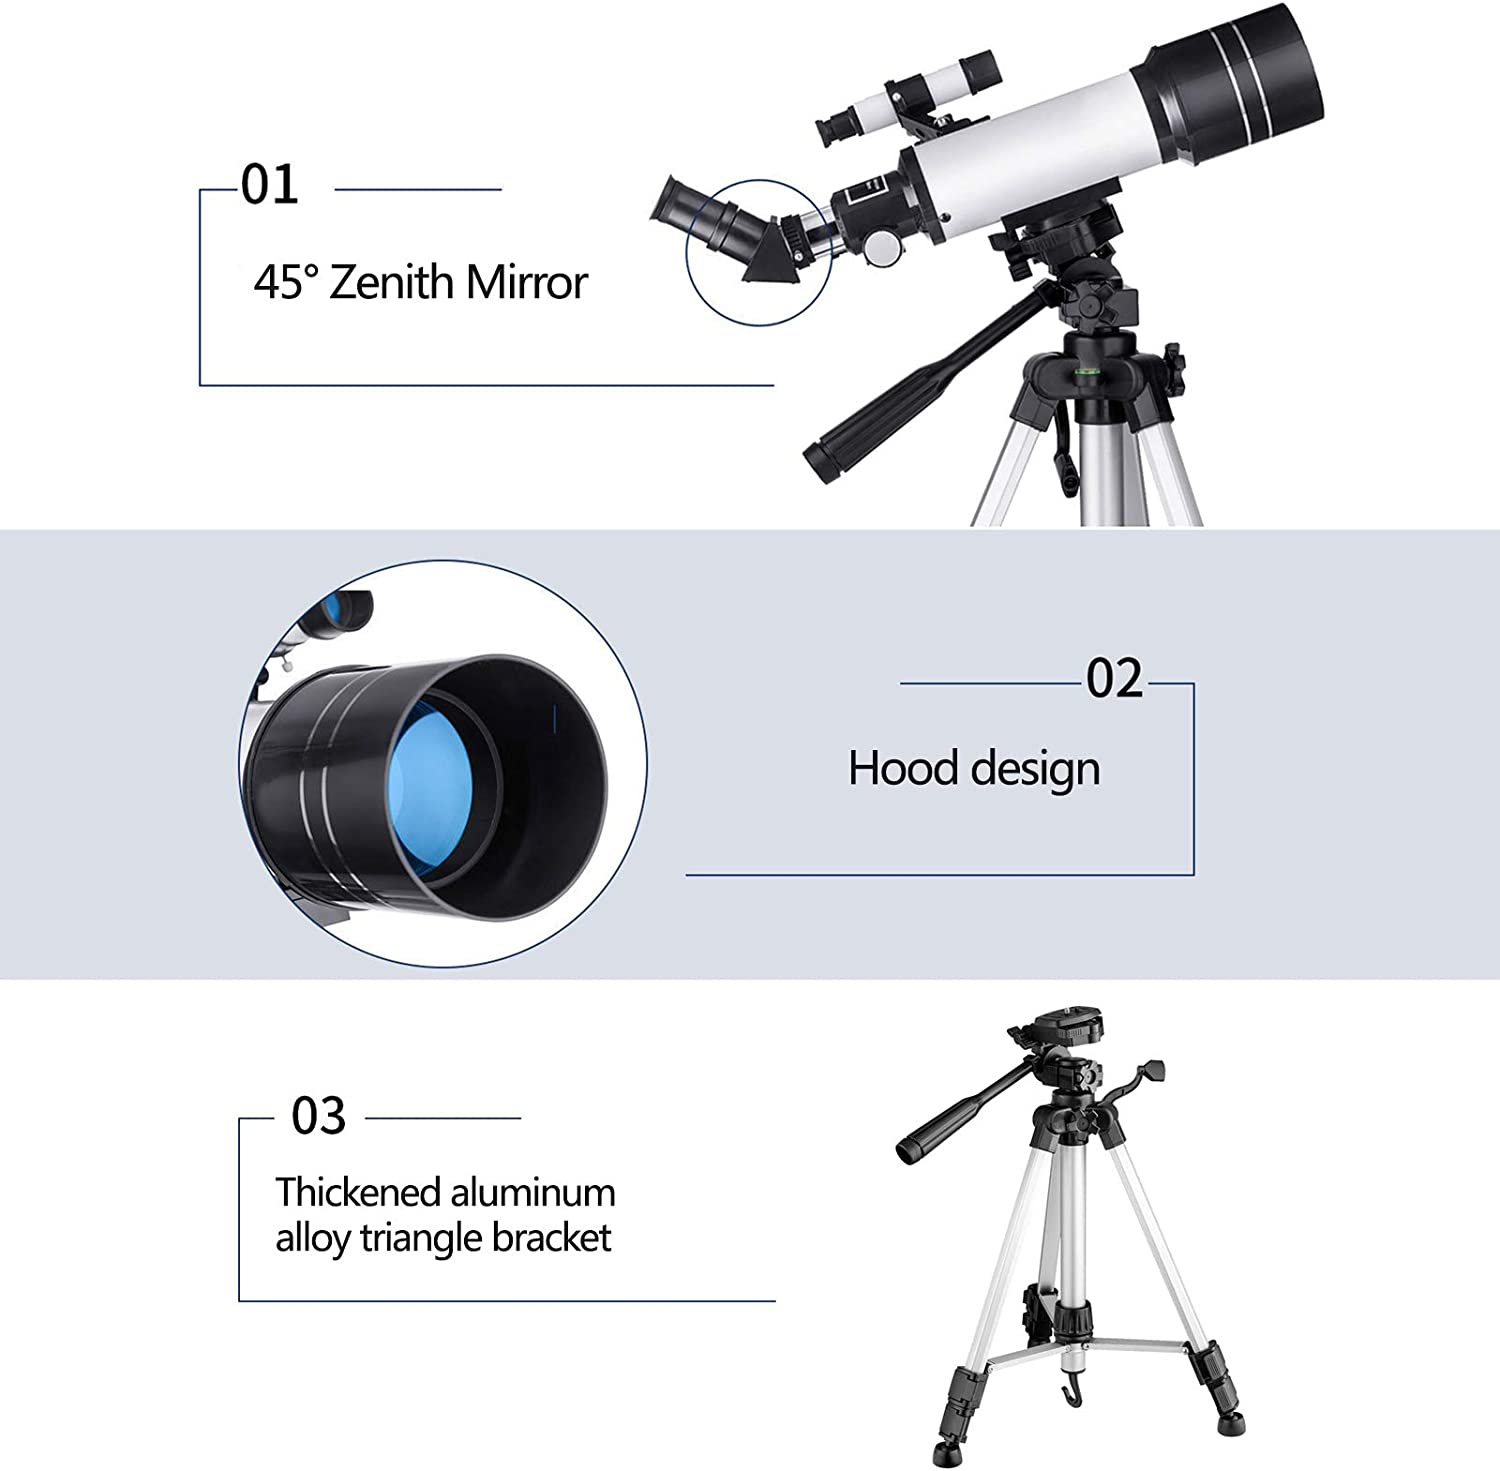 ALLWIN 40070mm Starter Scope Astronomy Telescopes,16X-199X HD Monocular Refractor Telescope,for Kids Beginners Adult,with Backpack,Phone Adapter,Tripod Moon Filter,Camera Controller